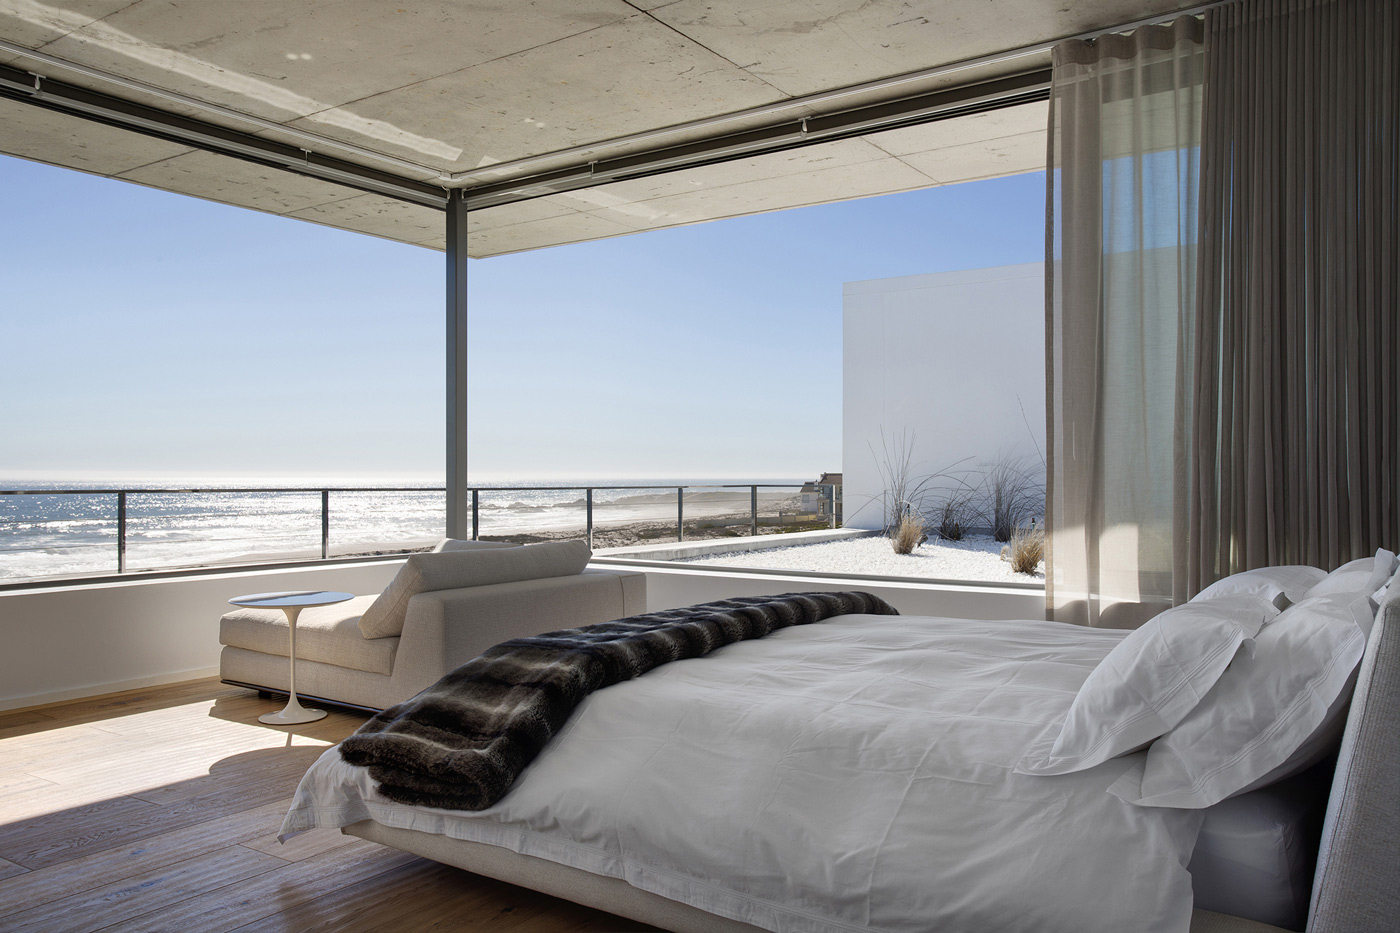 Bedroom, Holiday Home in Yzerfontein, South Africa